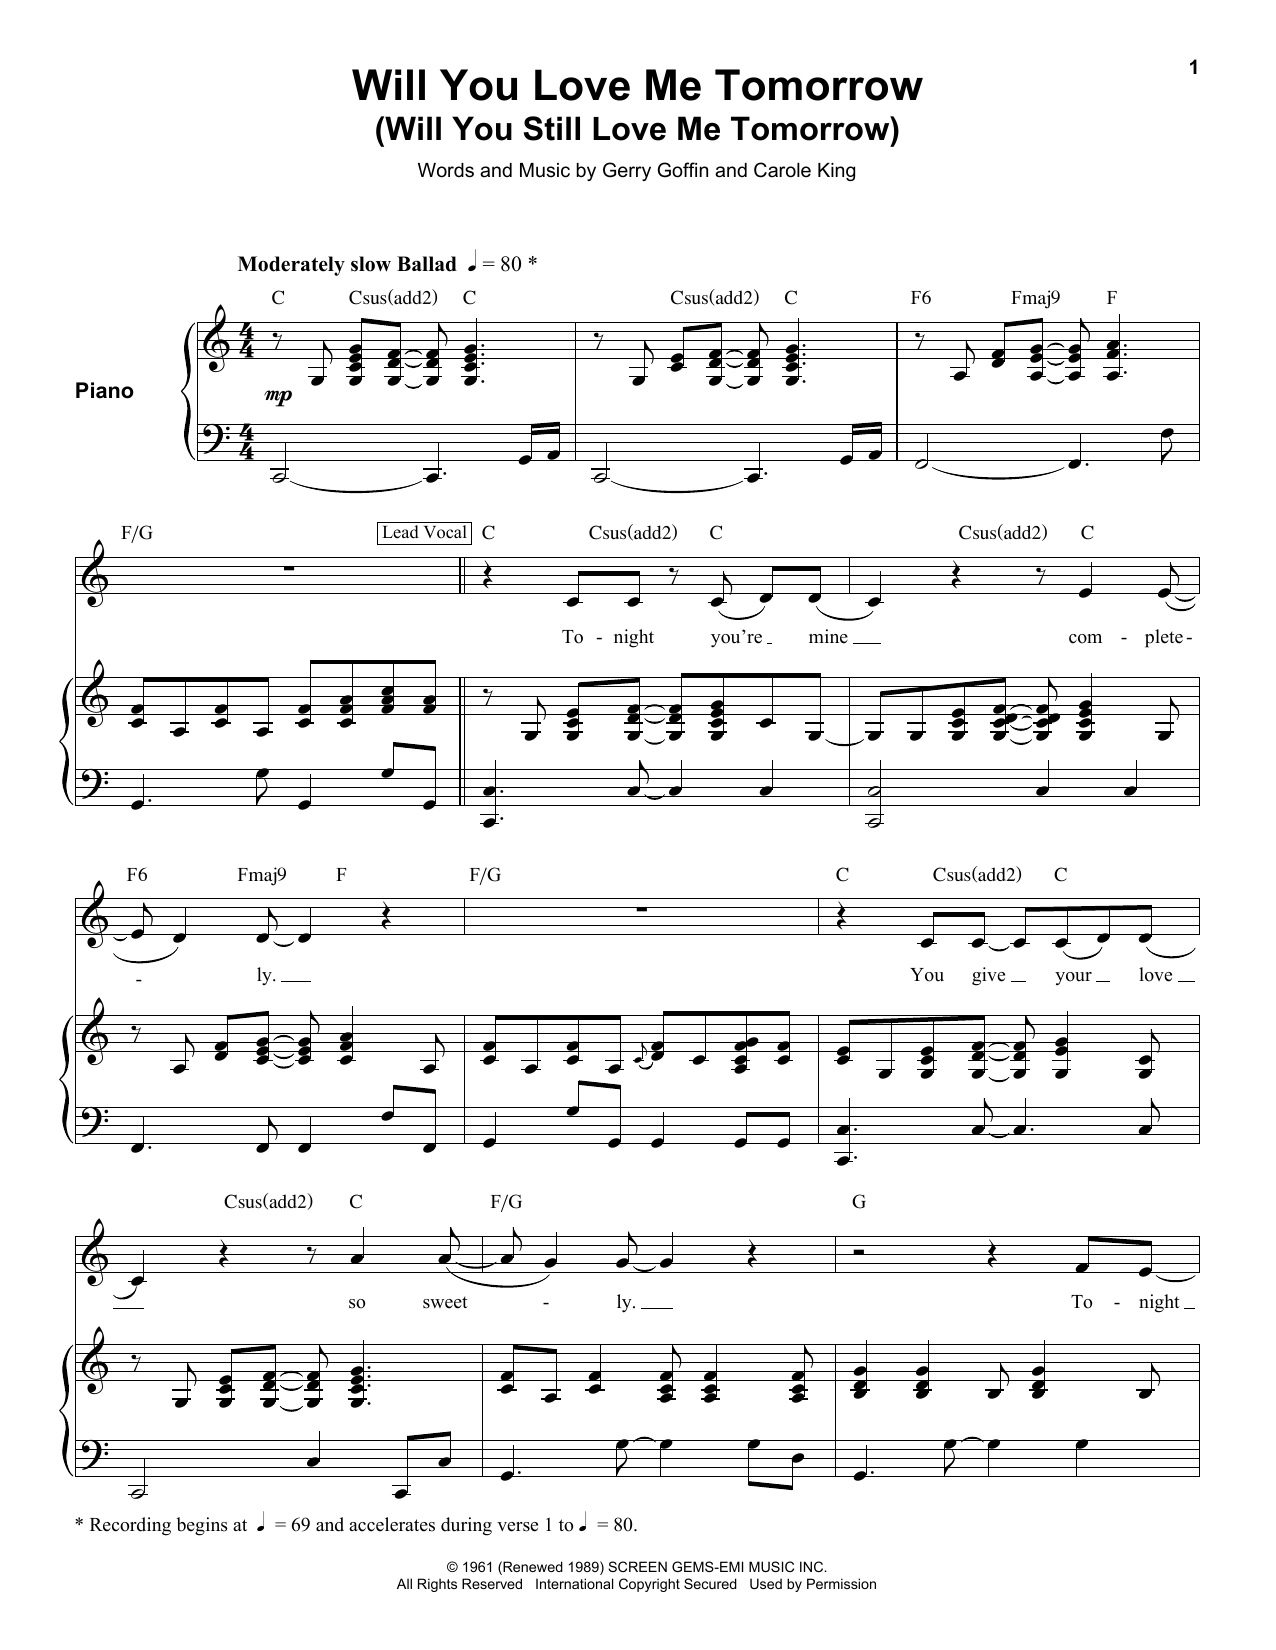 Will You Love Me Tomorrow Will You Still Love Me Tomorrow Sheet Music    The Shirelles   Keyboard Transcription